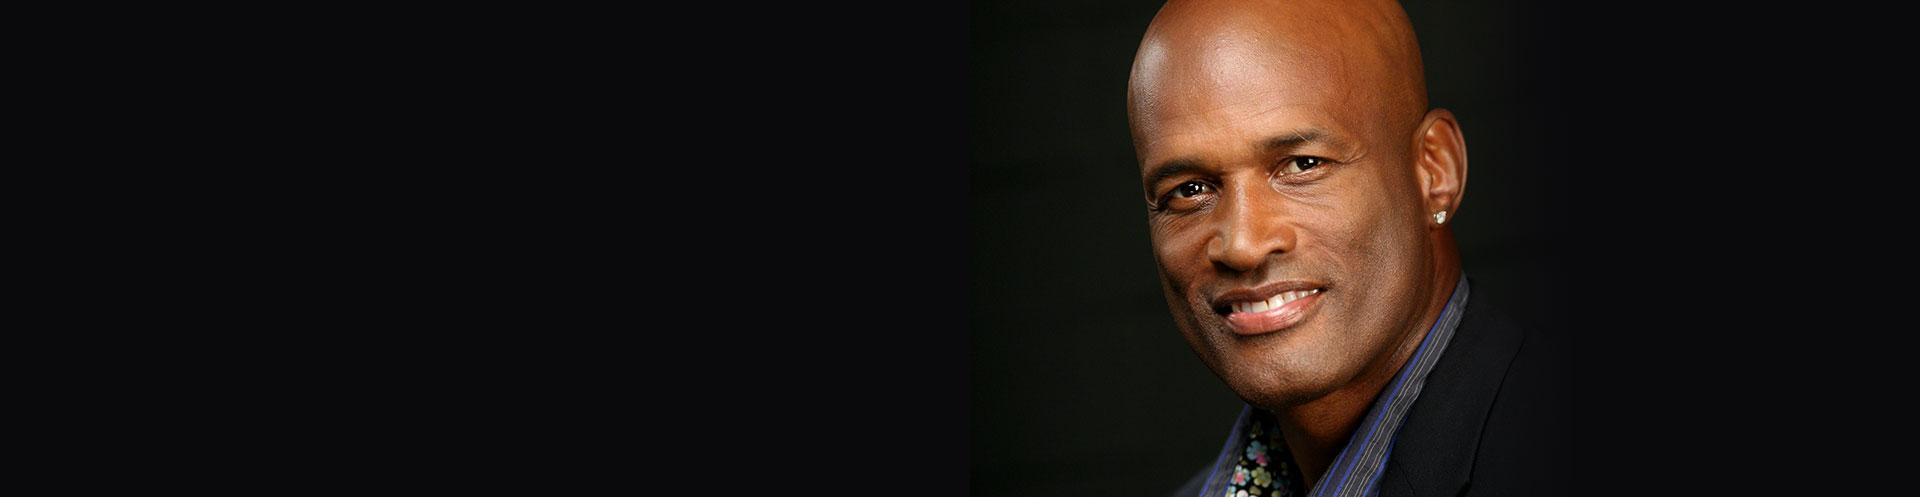 Kennesaw State University welcomes Tony Award-winner Kenny Leon